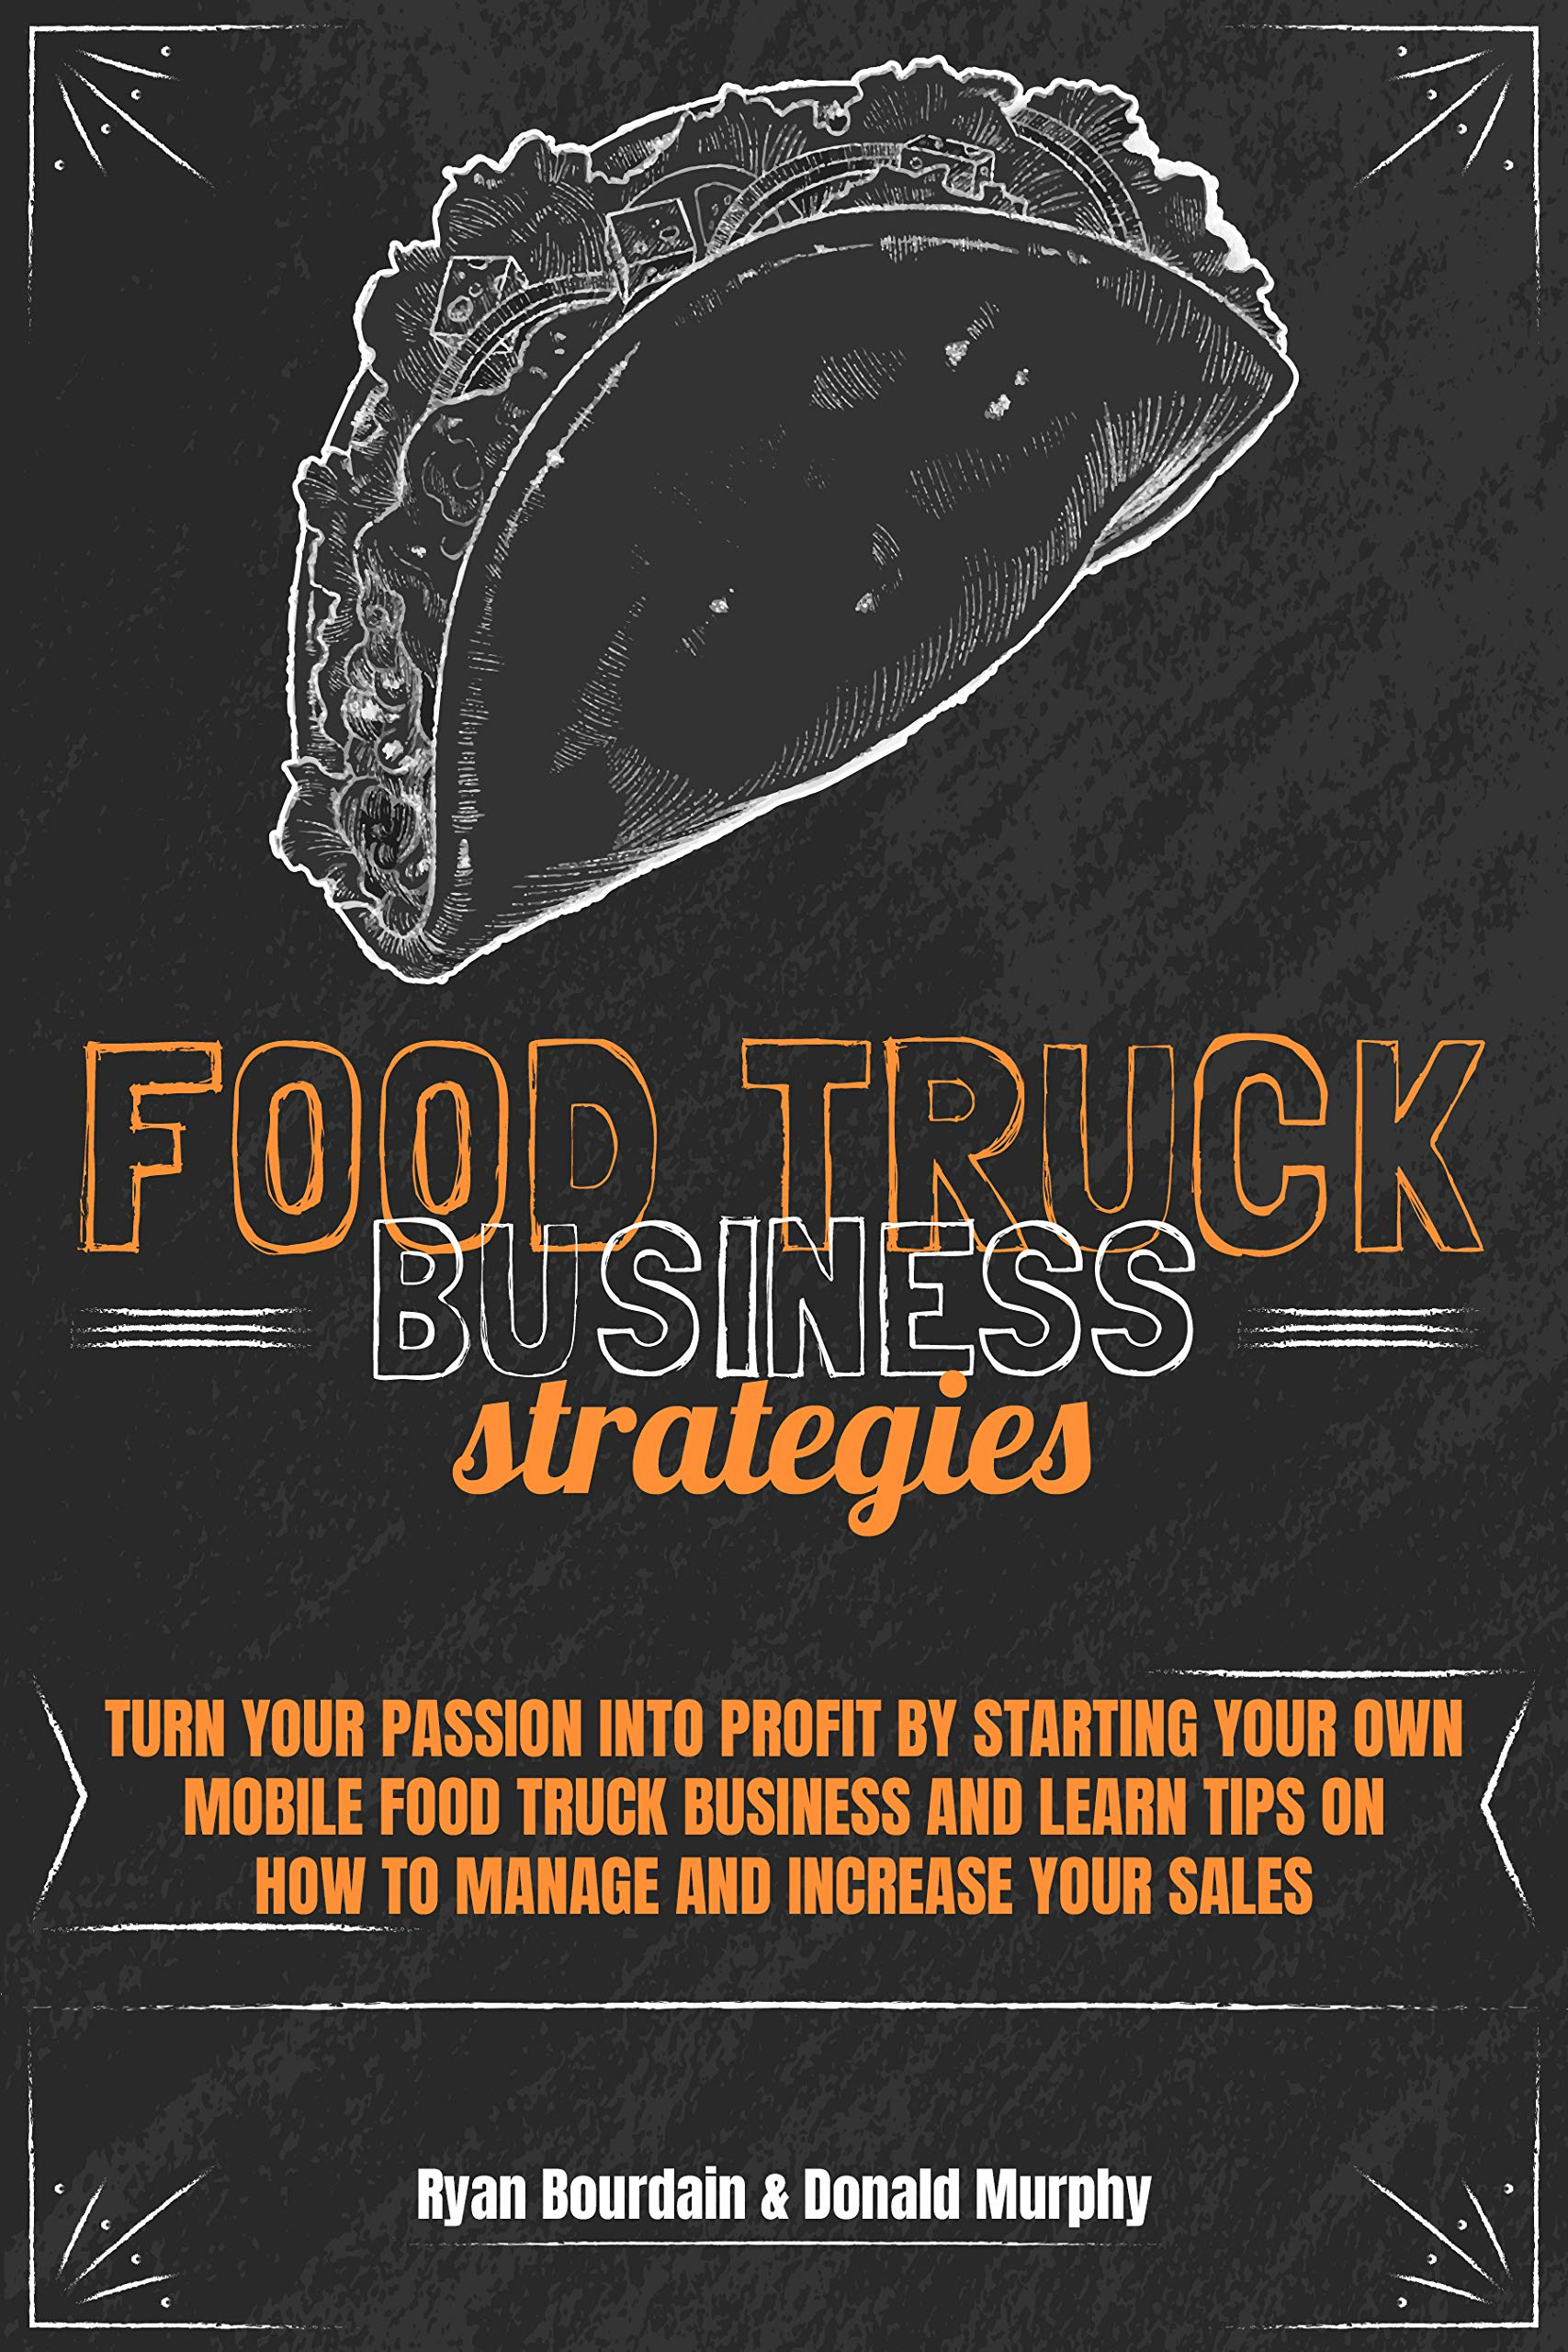 Food Truck Business Strategies : Turn Your Passion Into Profit By Starting Your Own Mobile Food Truck Business And Learn Tips On How To Manage And Increase Your Sales.